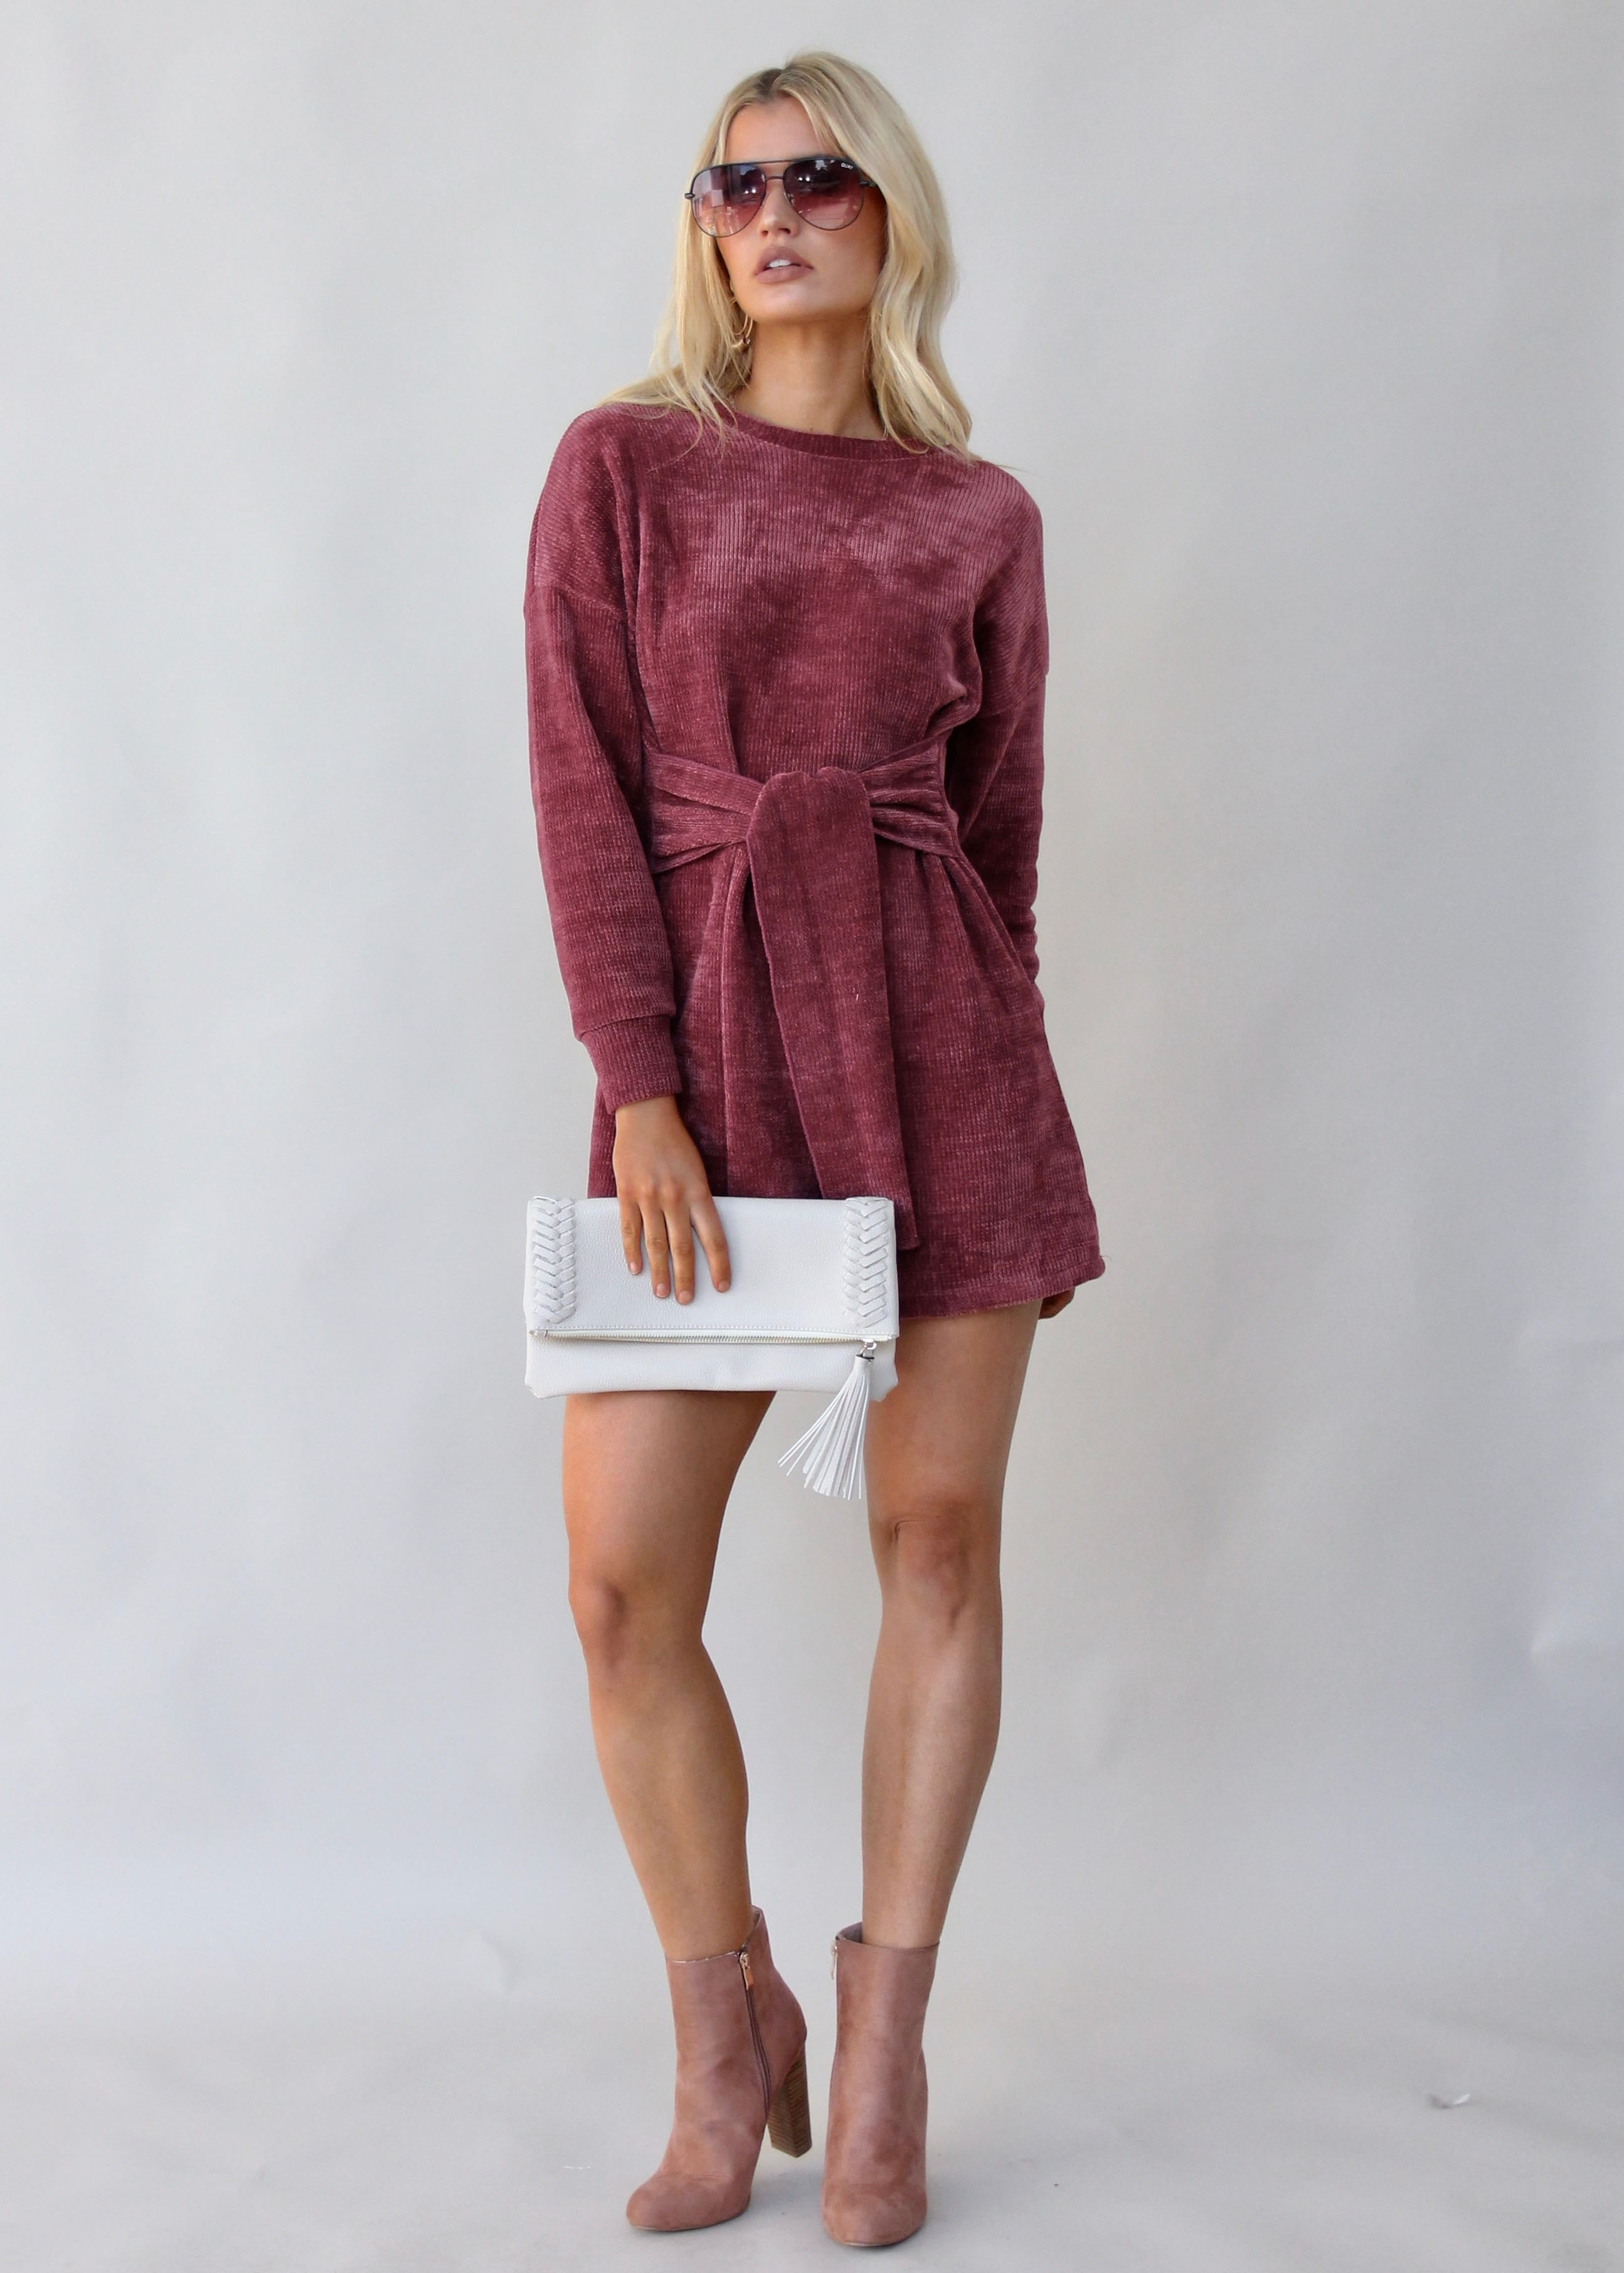 Hide Away Tie Knit Dress - Wine